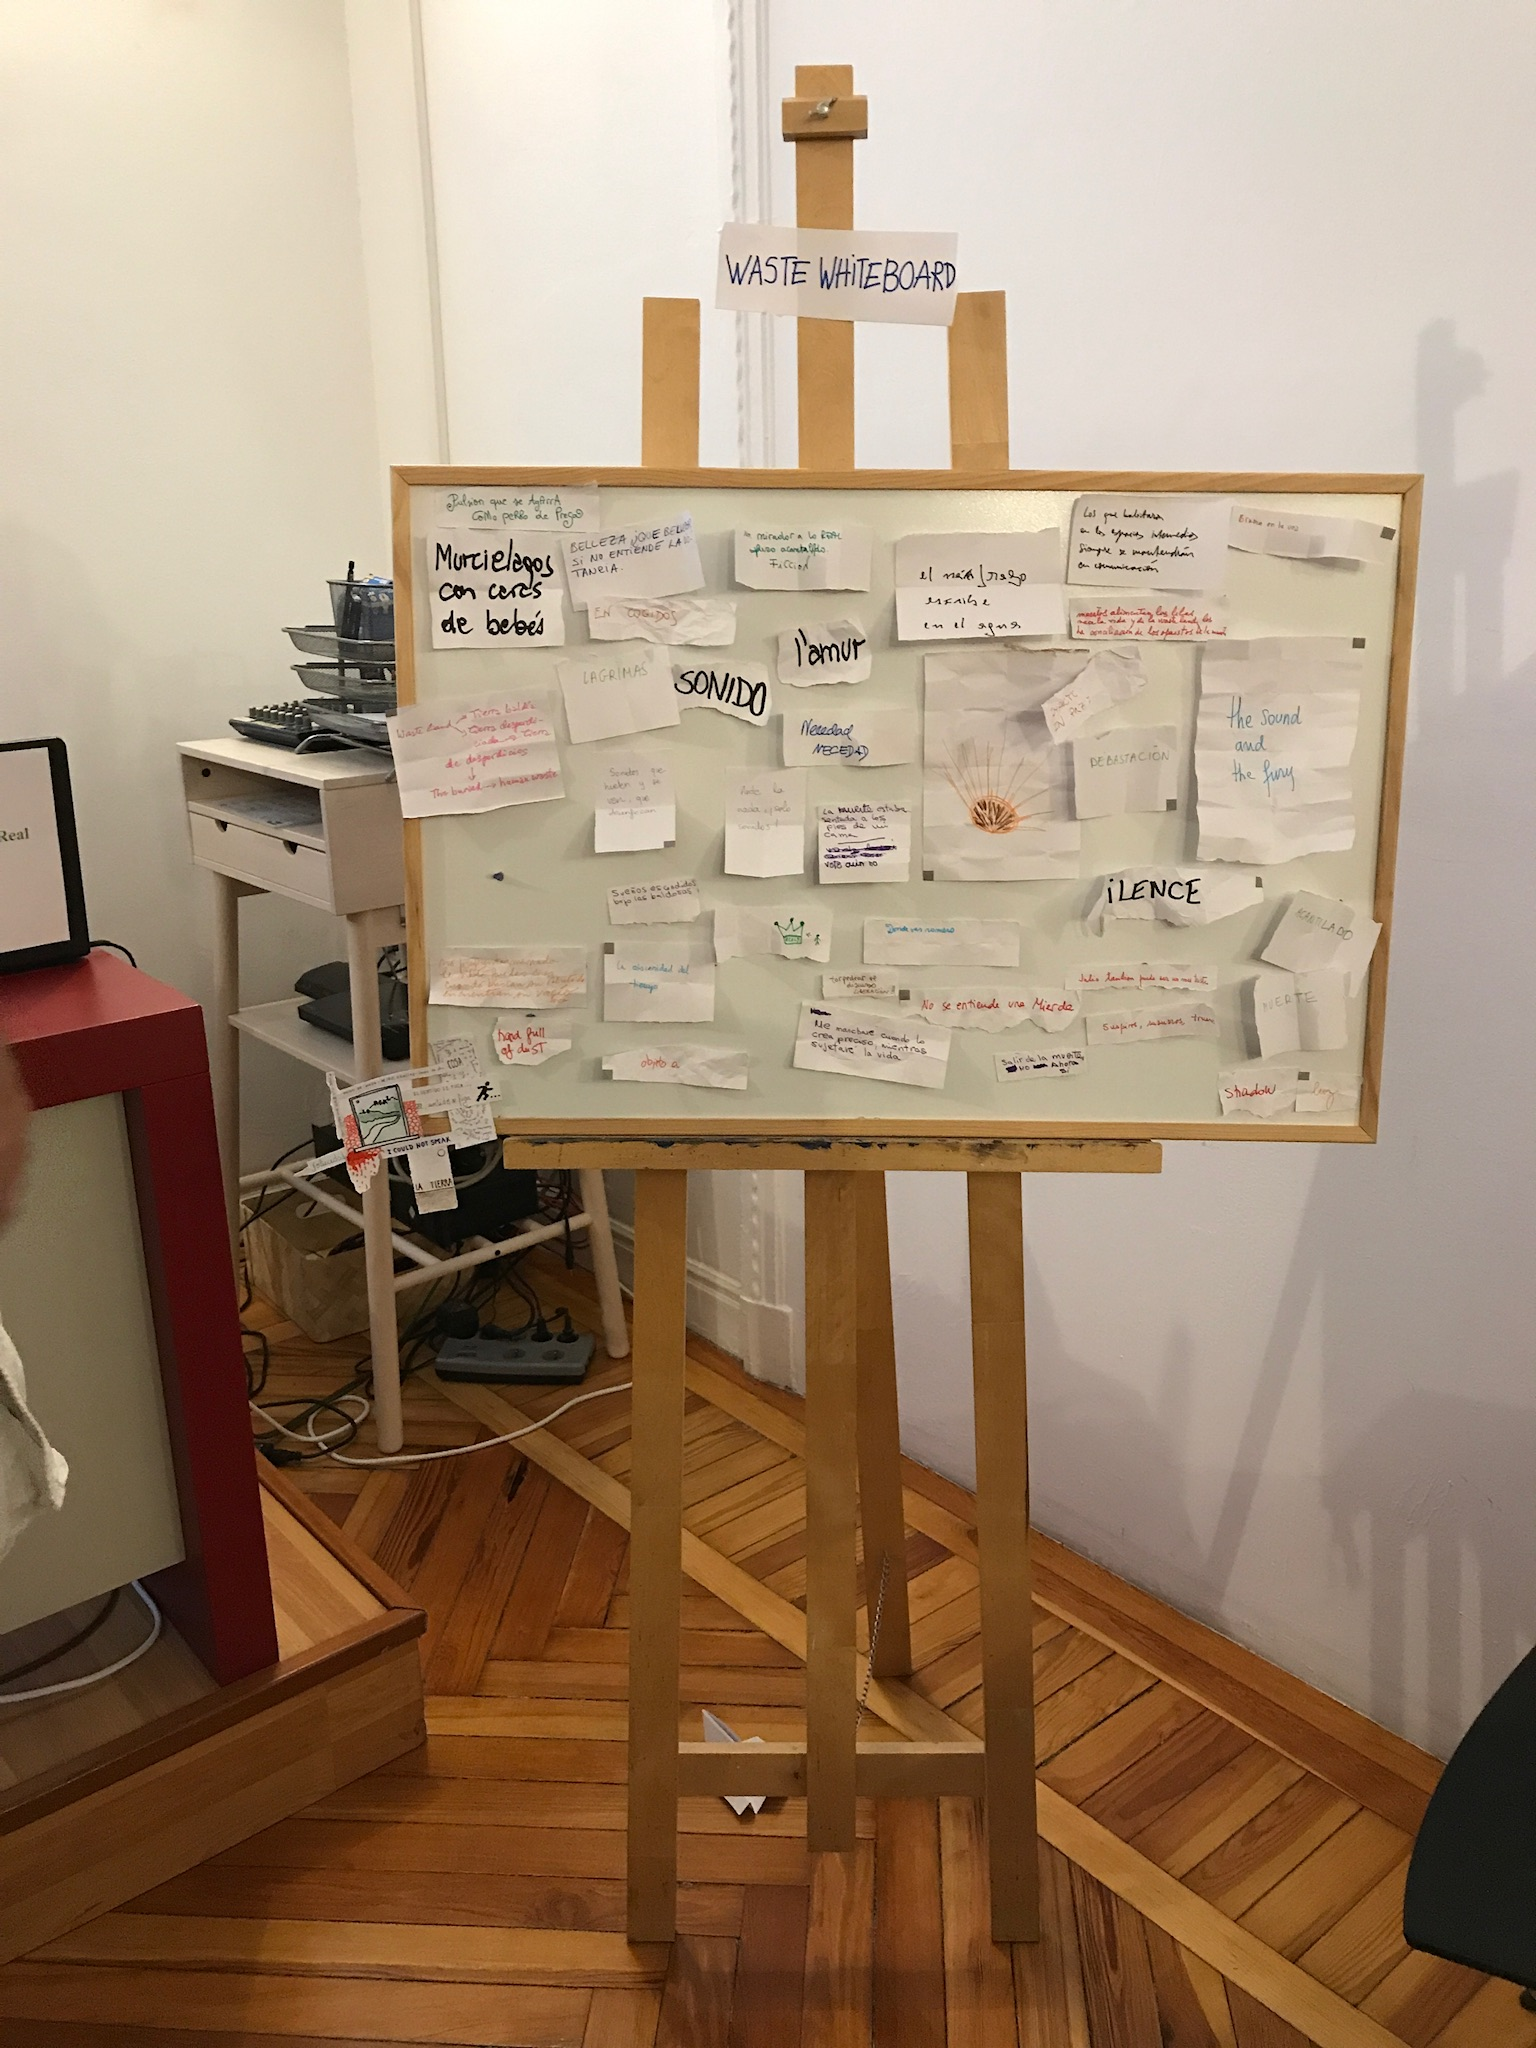 The Waste Whiteboard